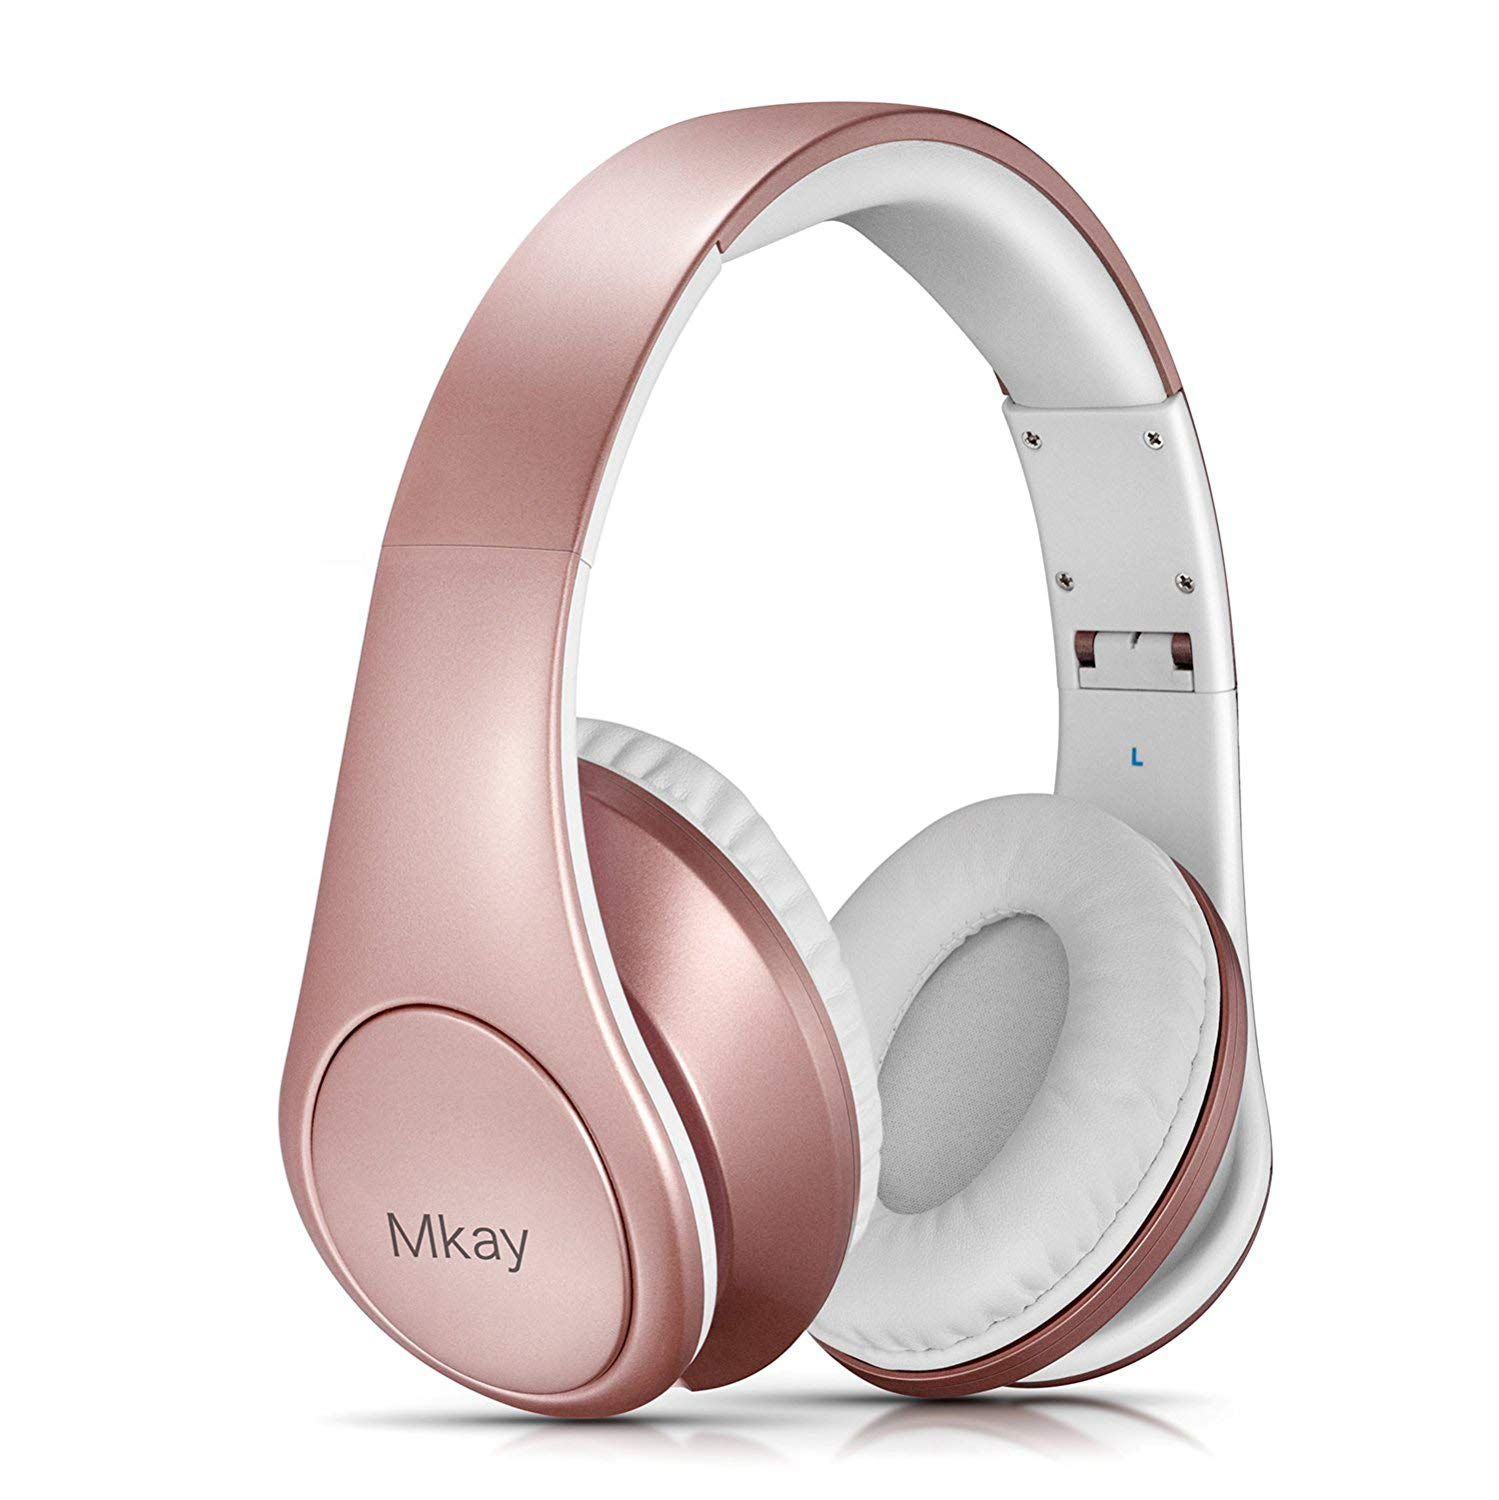 Over Ear Headphones, Mkay Bluetooth V4.2 Wireless Headset with Deep Bass Microphone Hi-Fi Stereo, Foldable & Lightweight,25H Playtime for Travel Work TV Computer iPhone-Rose Gold